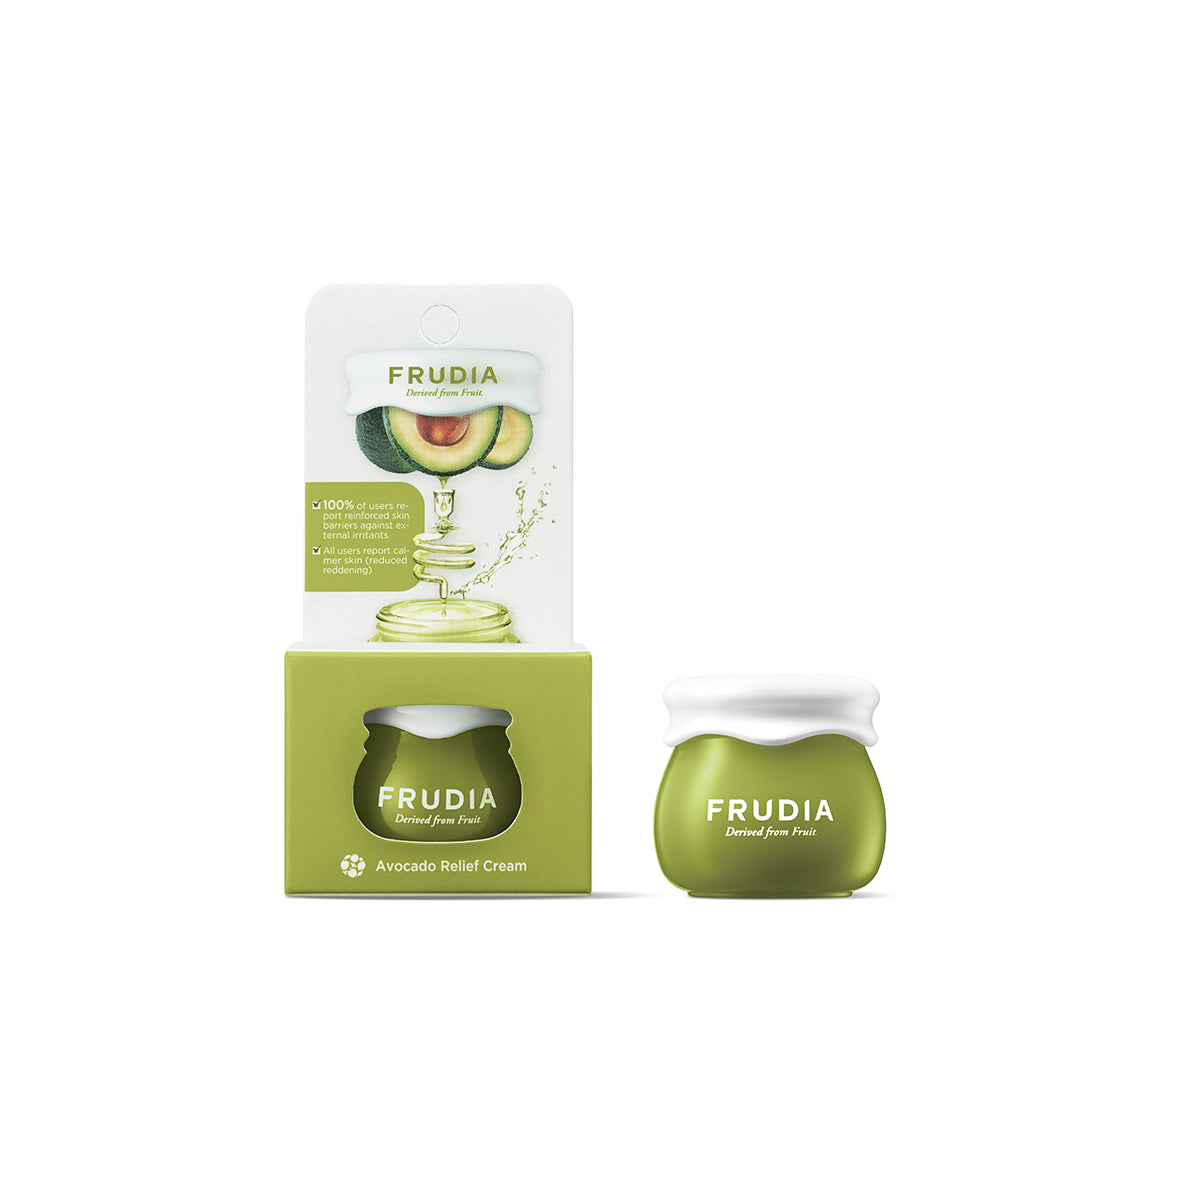 Frudia Avocado Relief Cream - Mini 10g